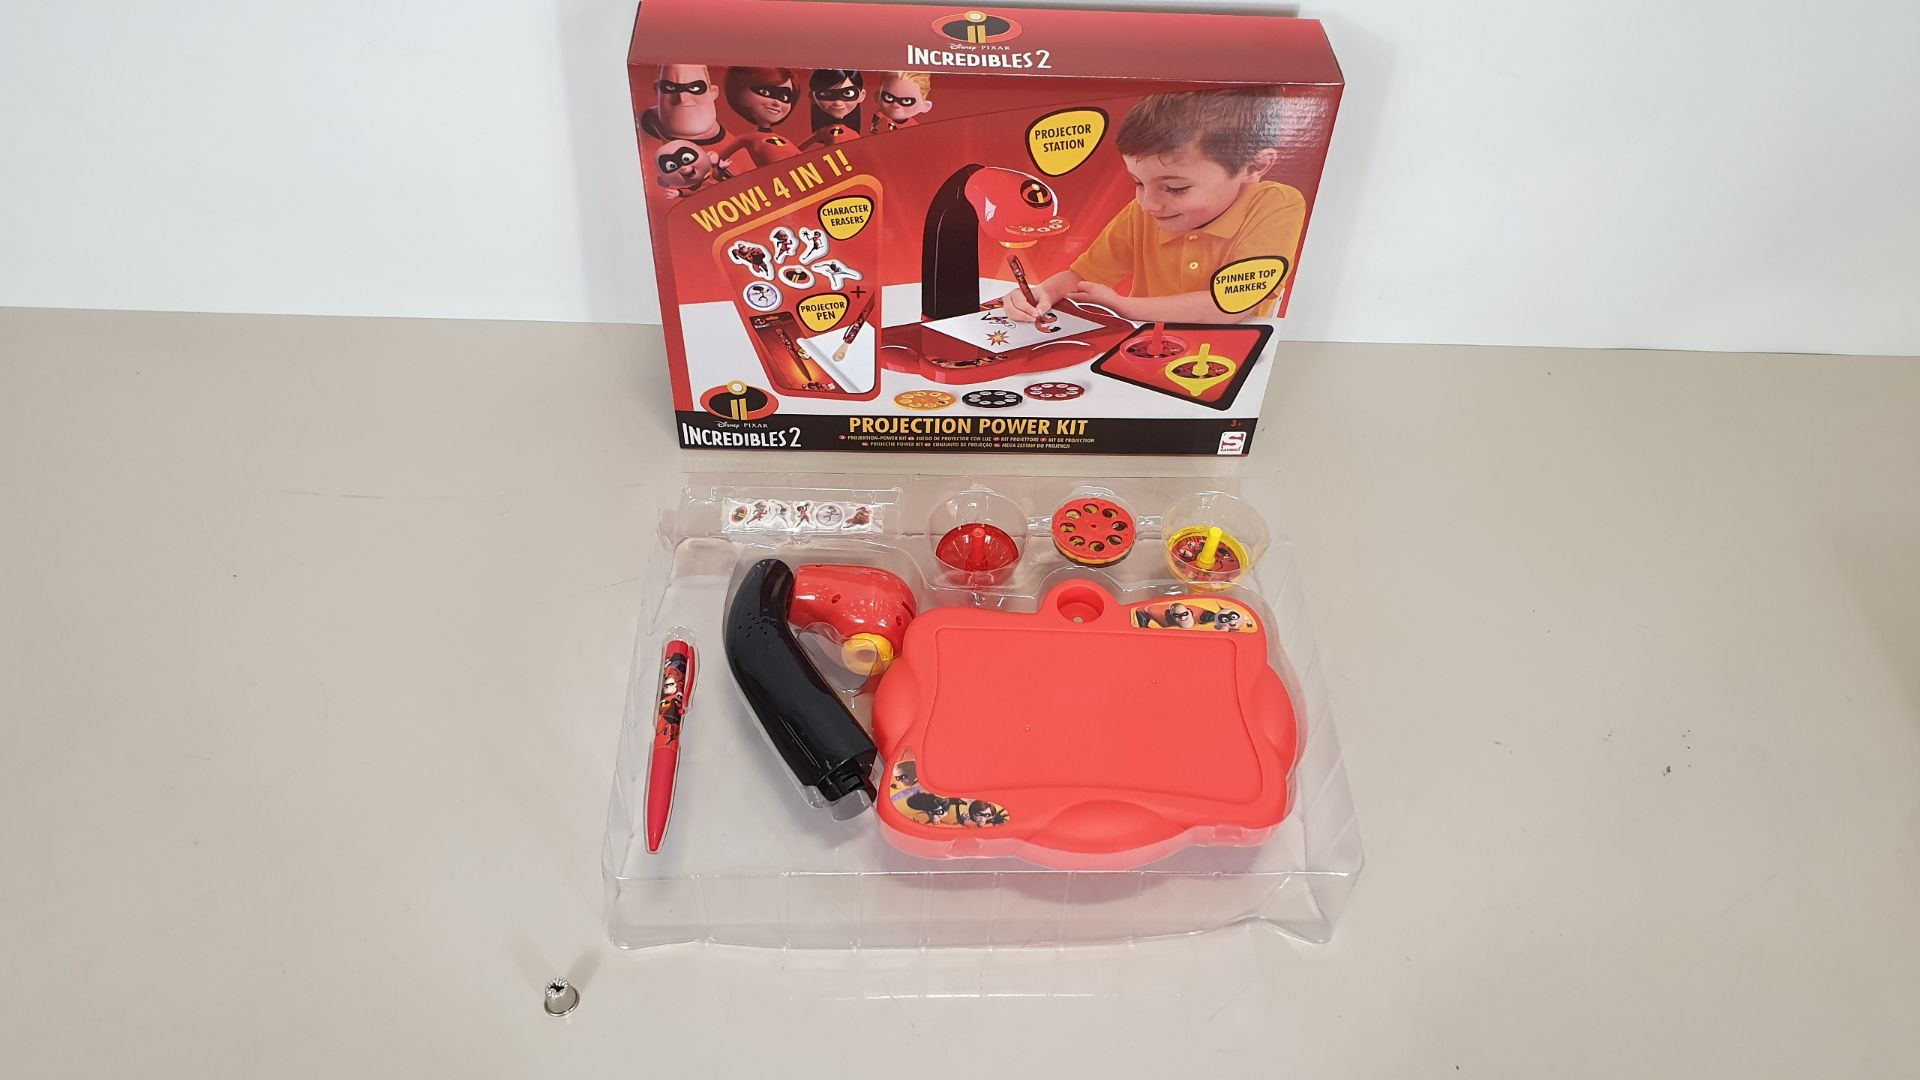 Lot 36 - 60 X BRAND NEW DISNEY PIXAR INCREDIBLES 2 WOW 4 IN 1 PROJECTION POWER KIT, INCLUDES PROJECTION